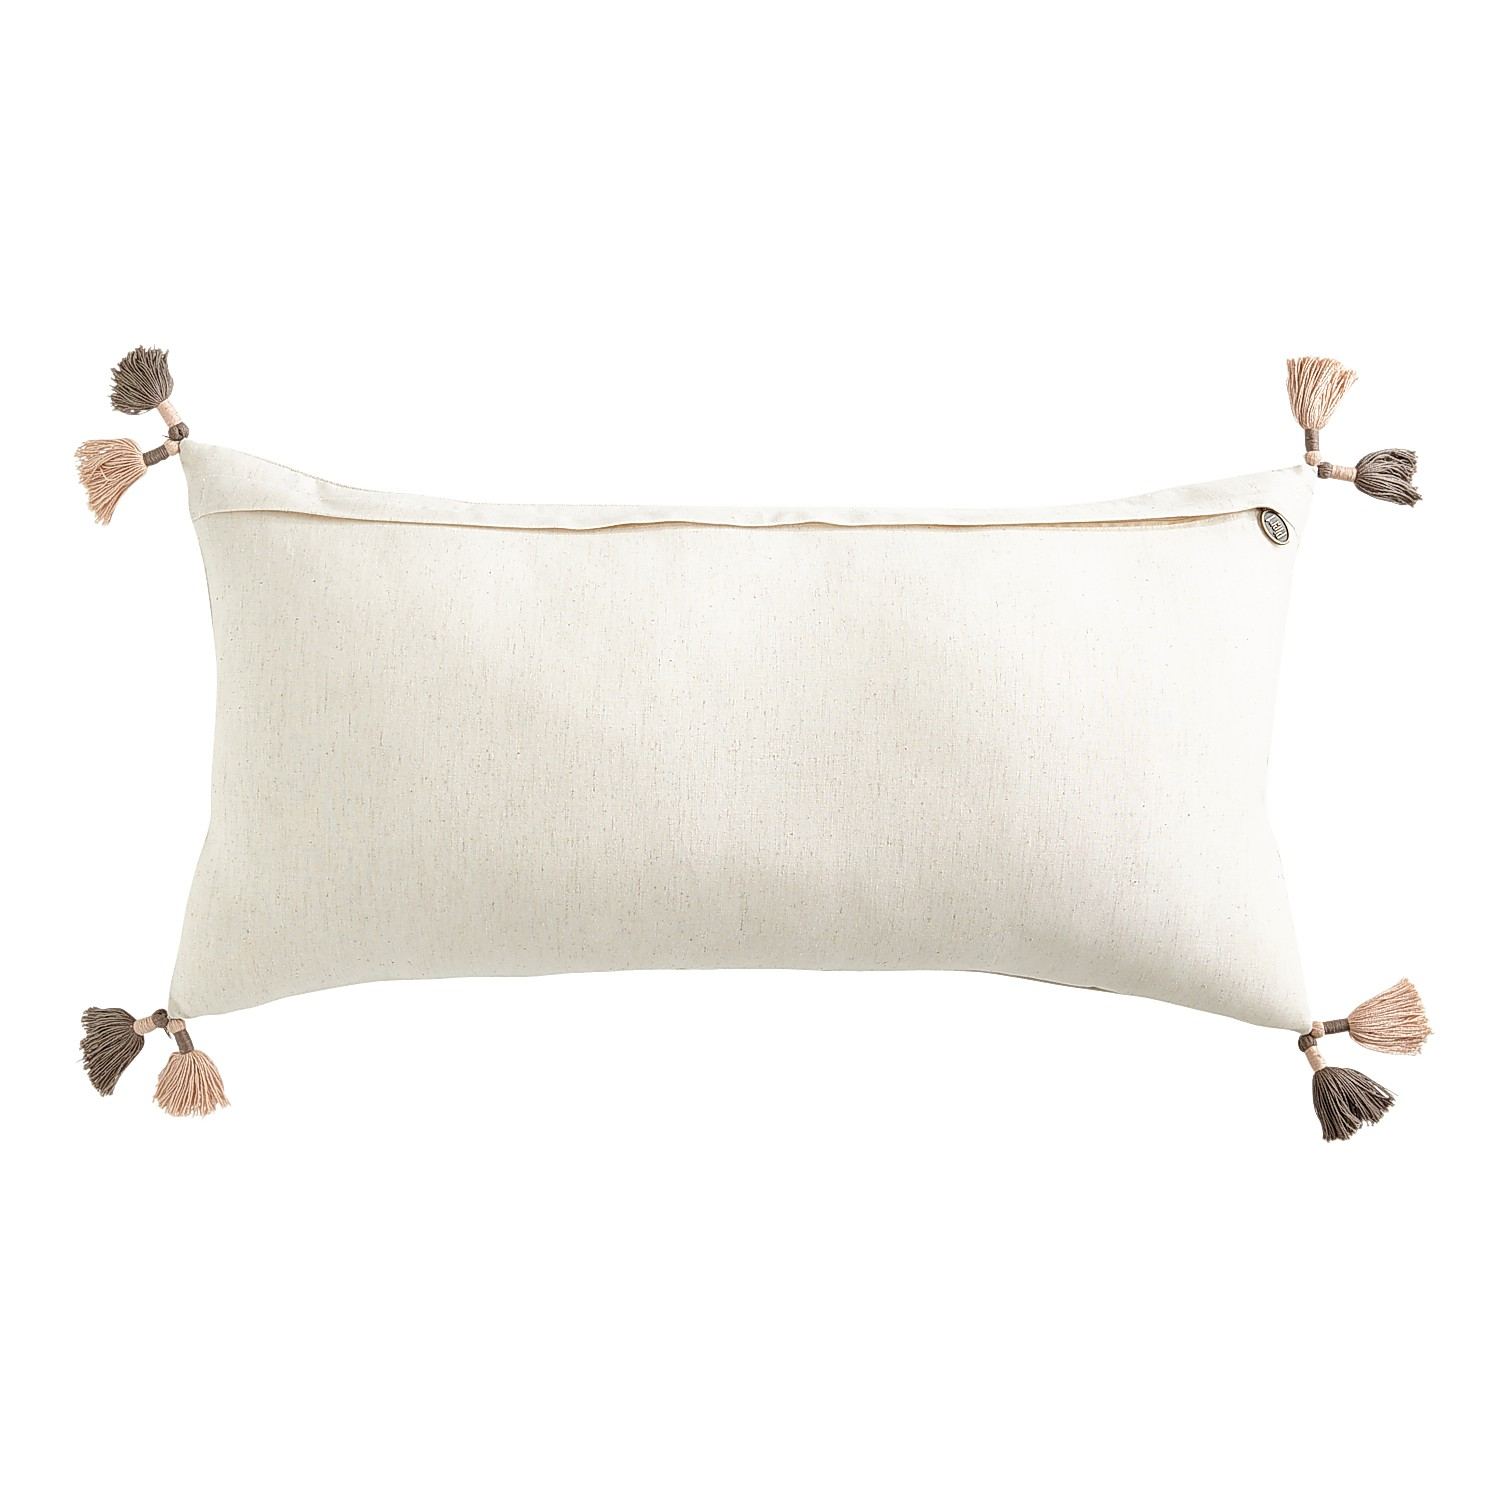 Pumpkins & Squash Lumbar Pillow with Tassels